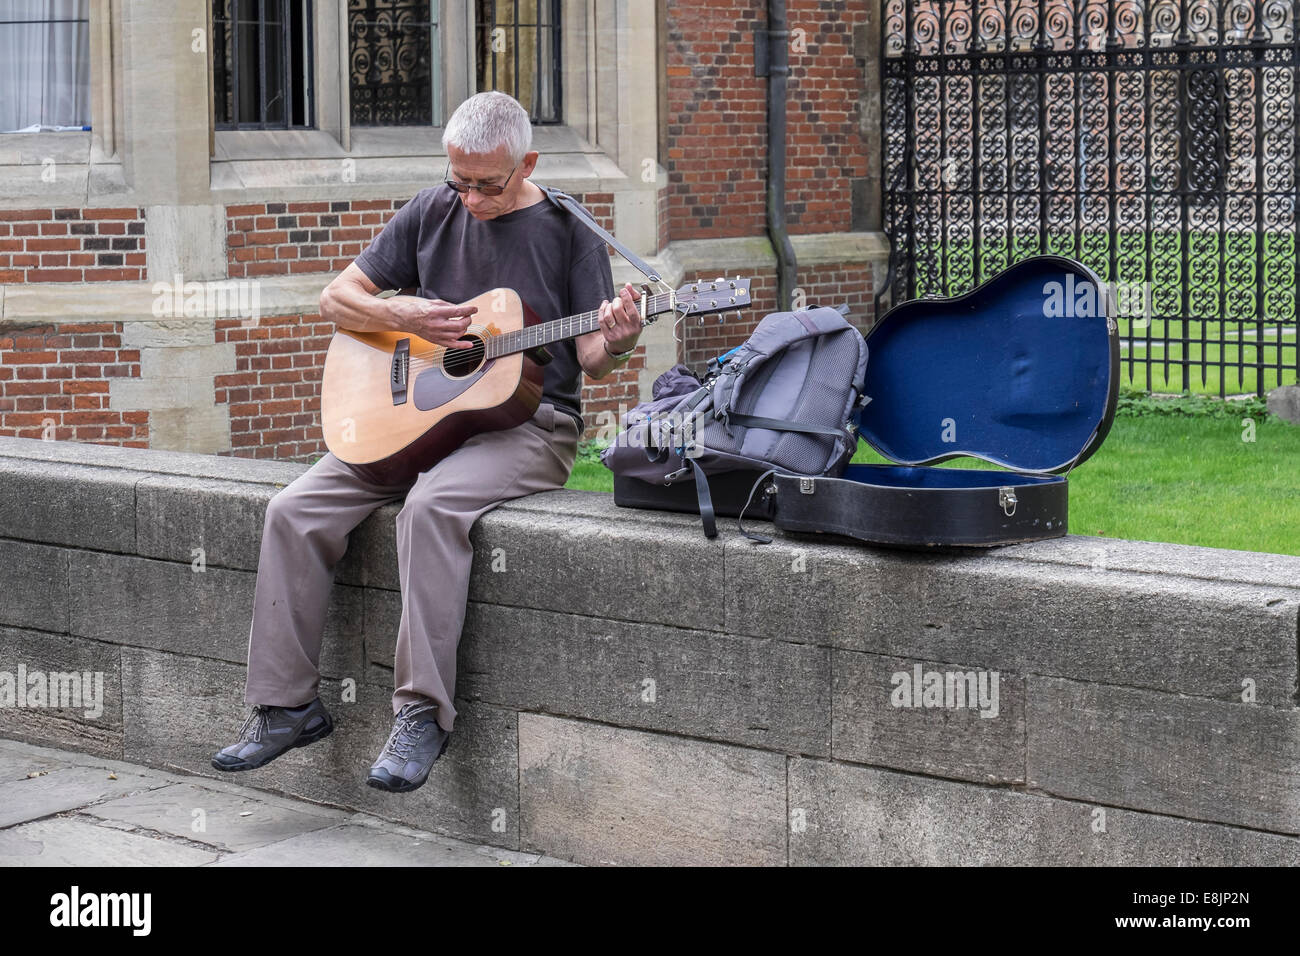 man-busking-on-guitar-sat-on-wall-st-joh